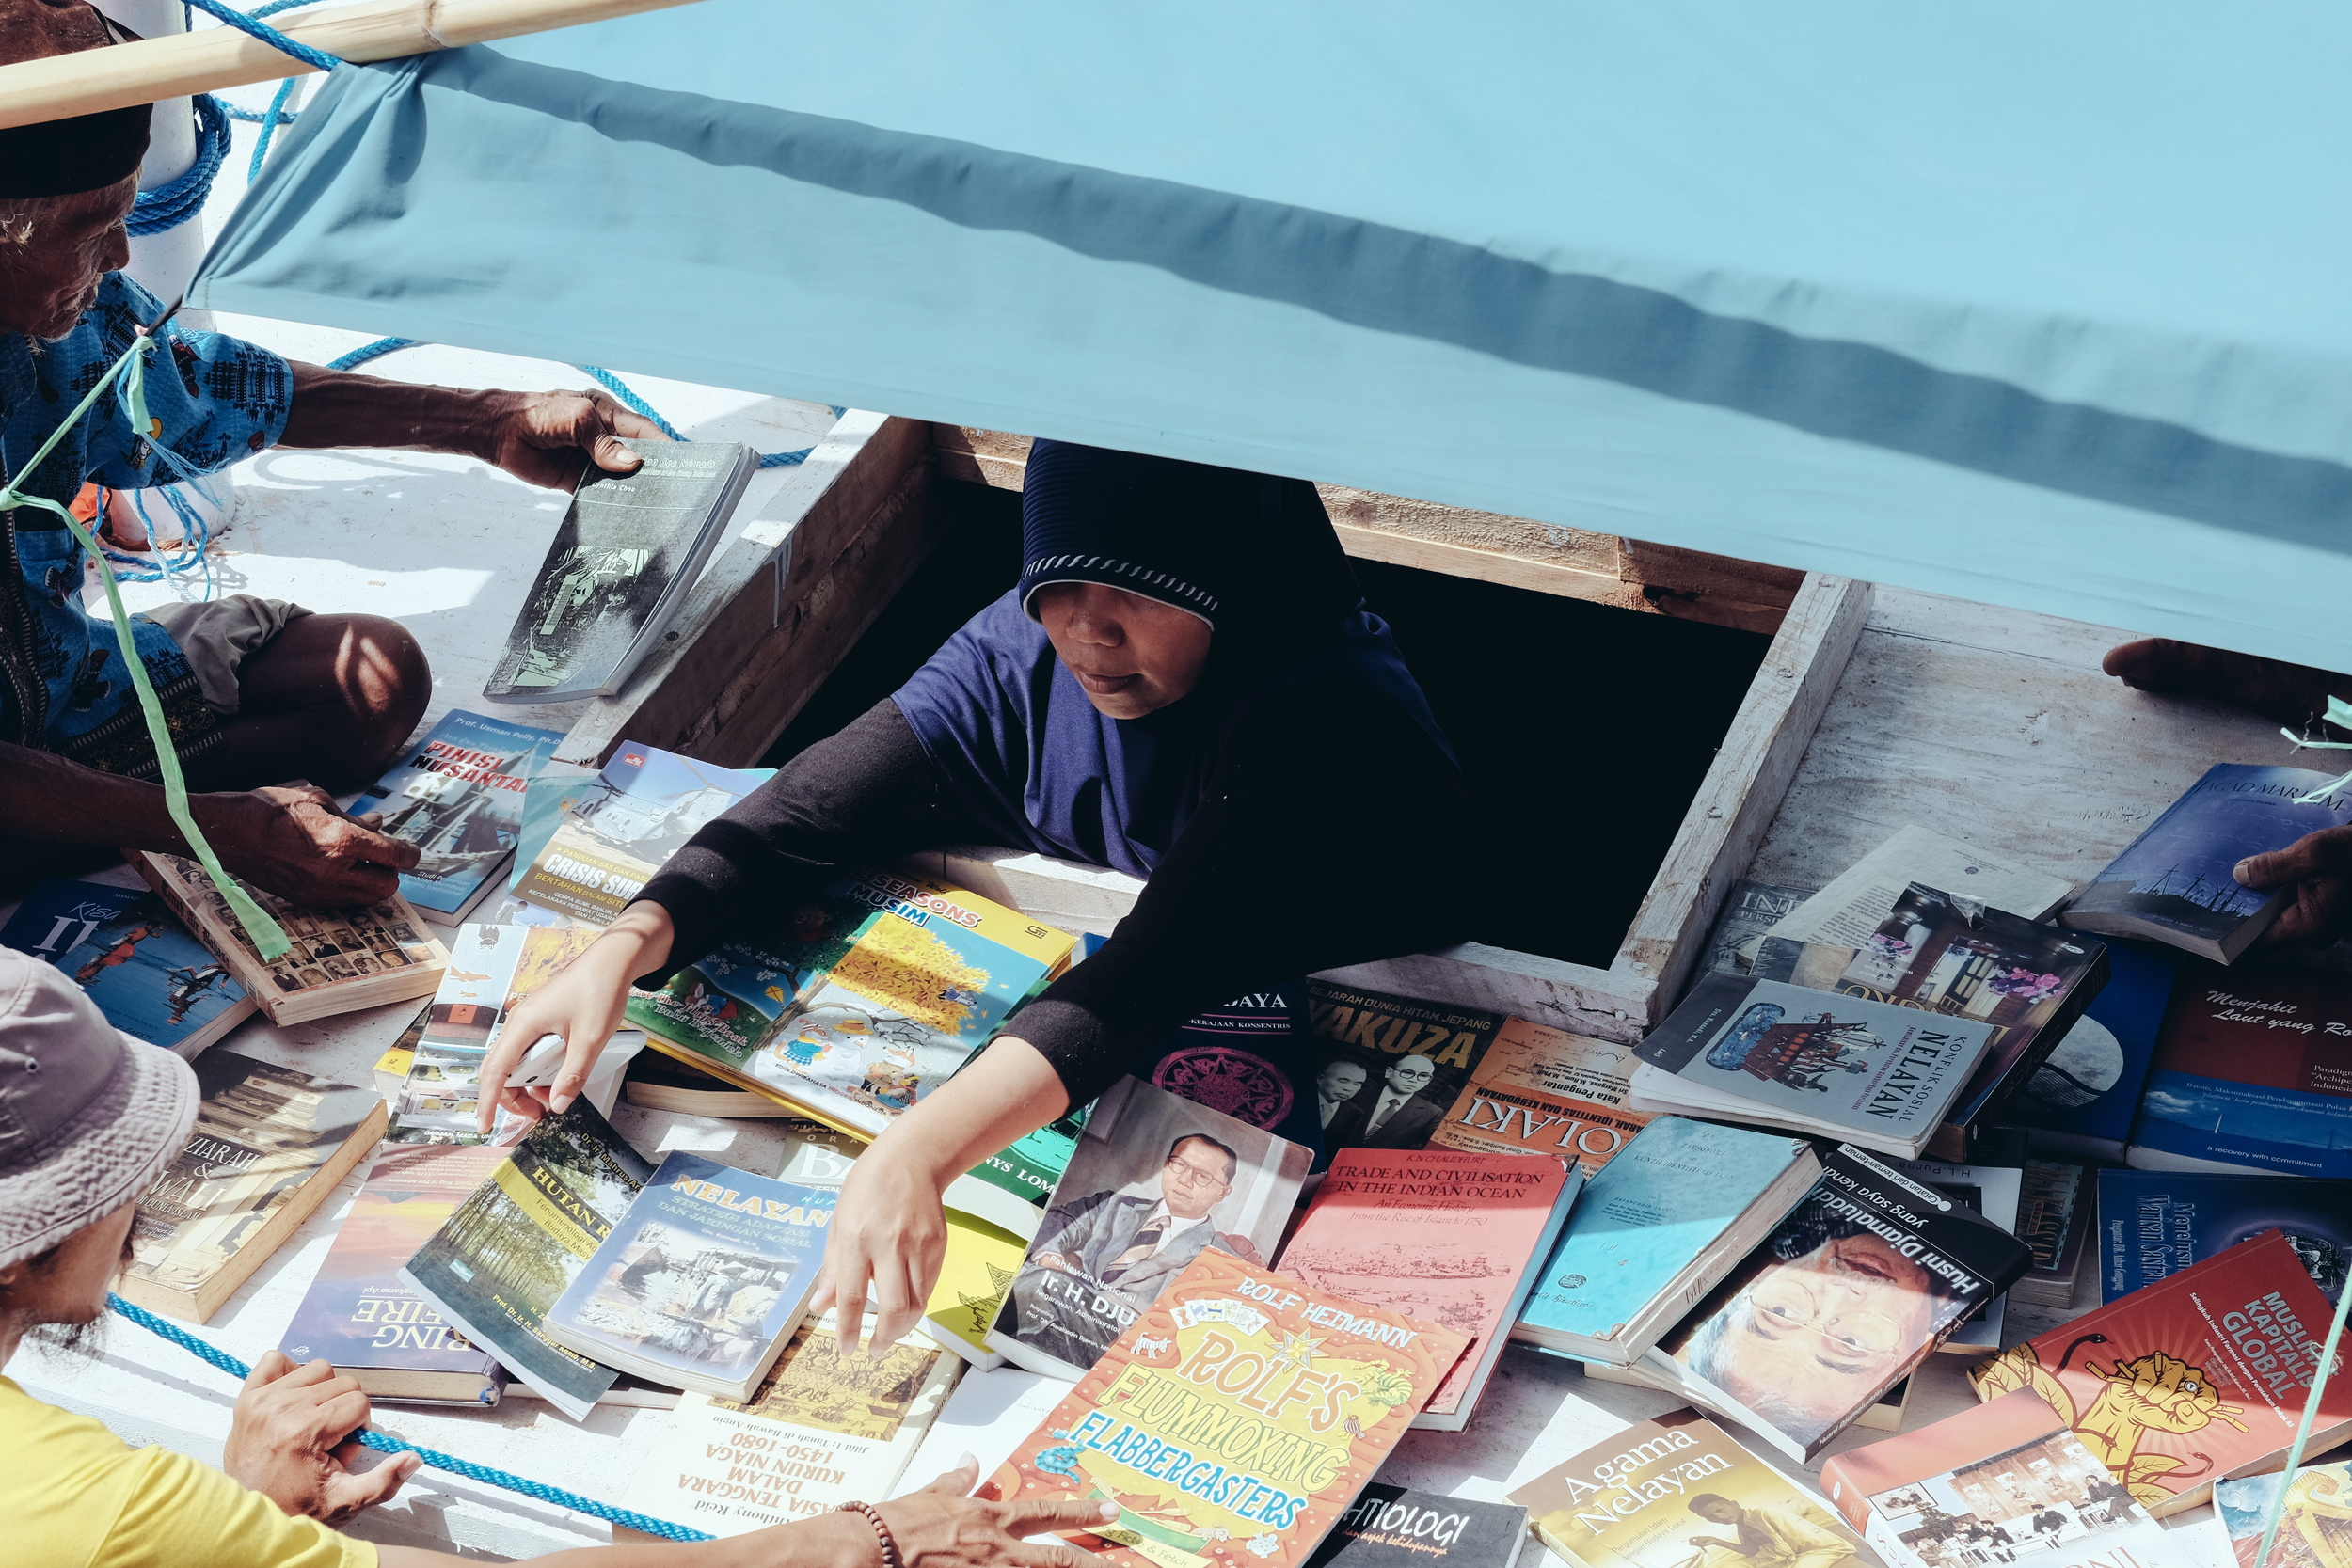 Some of the books carried by the floating library